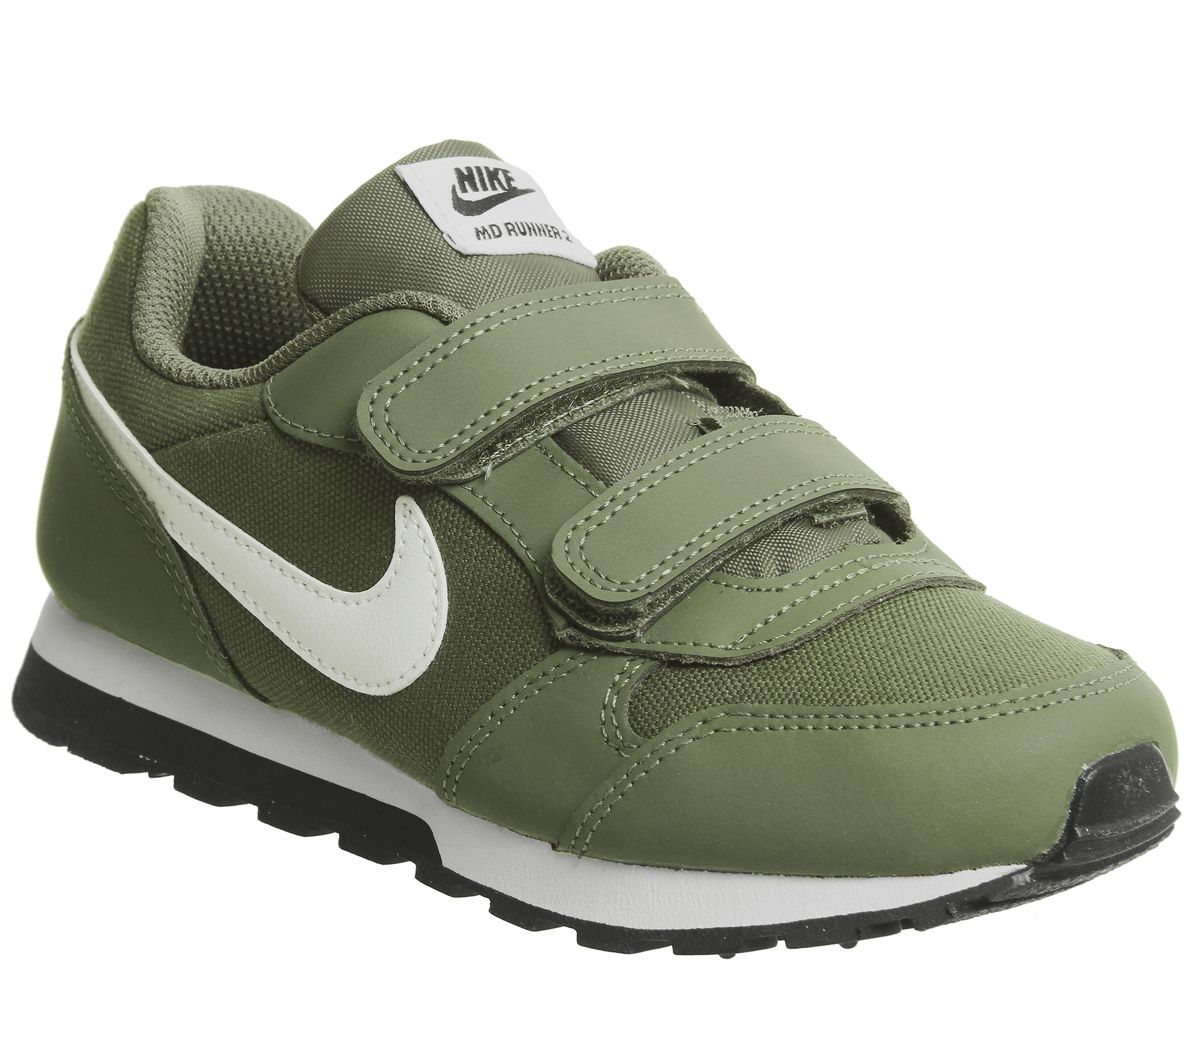 916026ec09 Nike Md Runner Ps Medium Olive White Black - Unisex